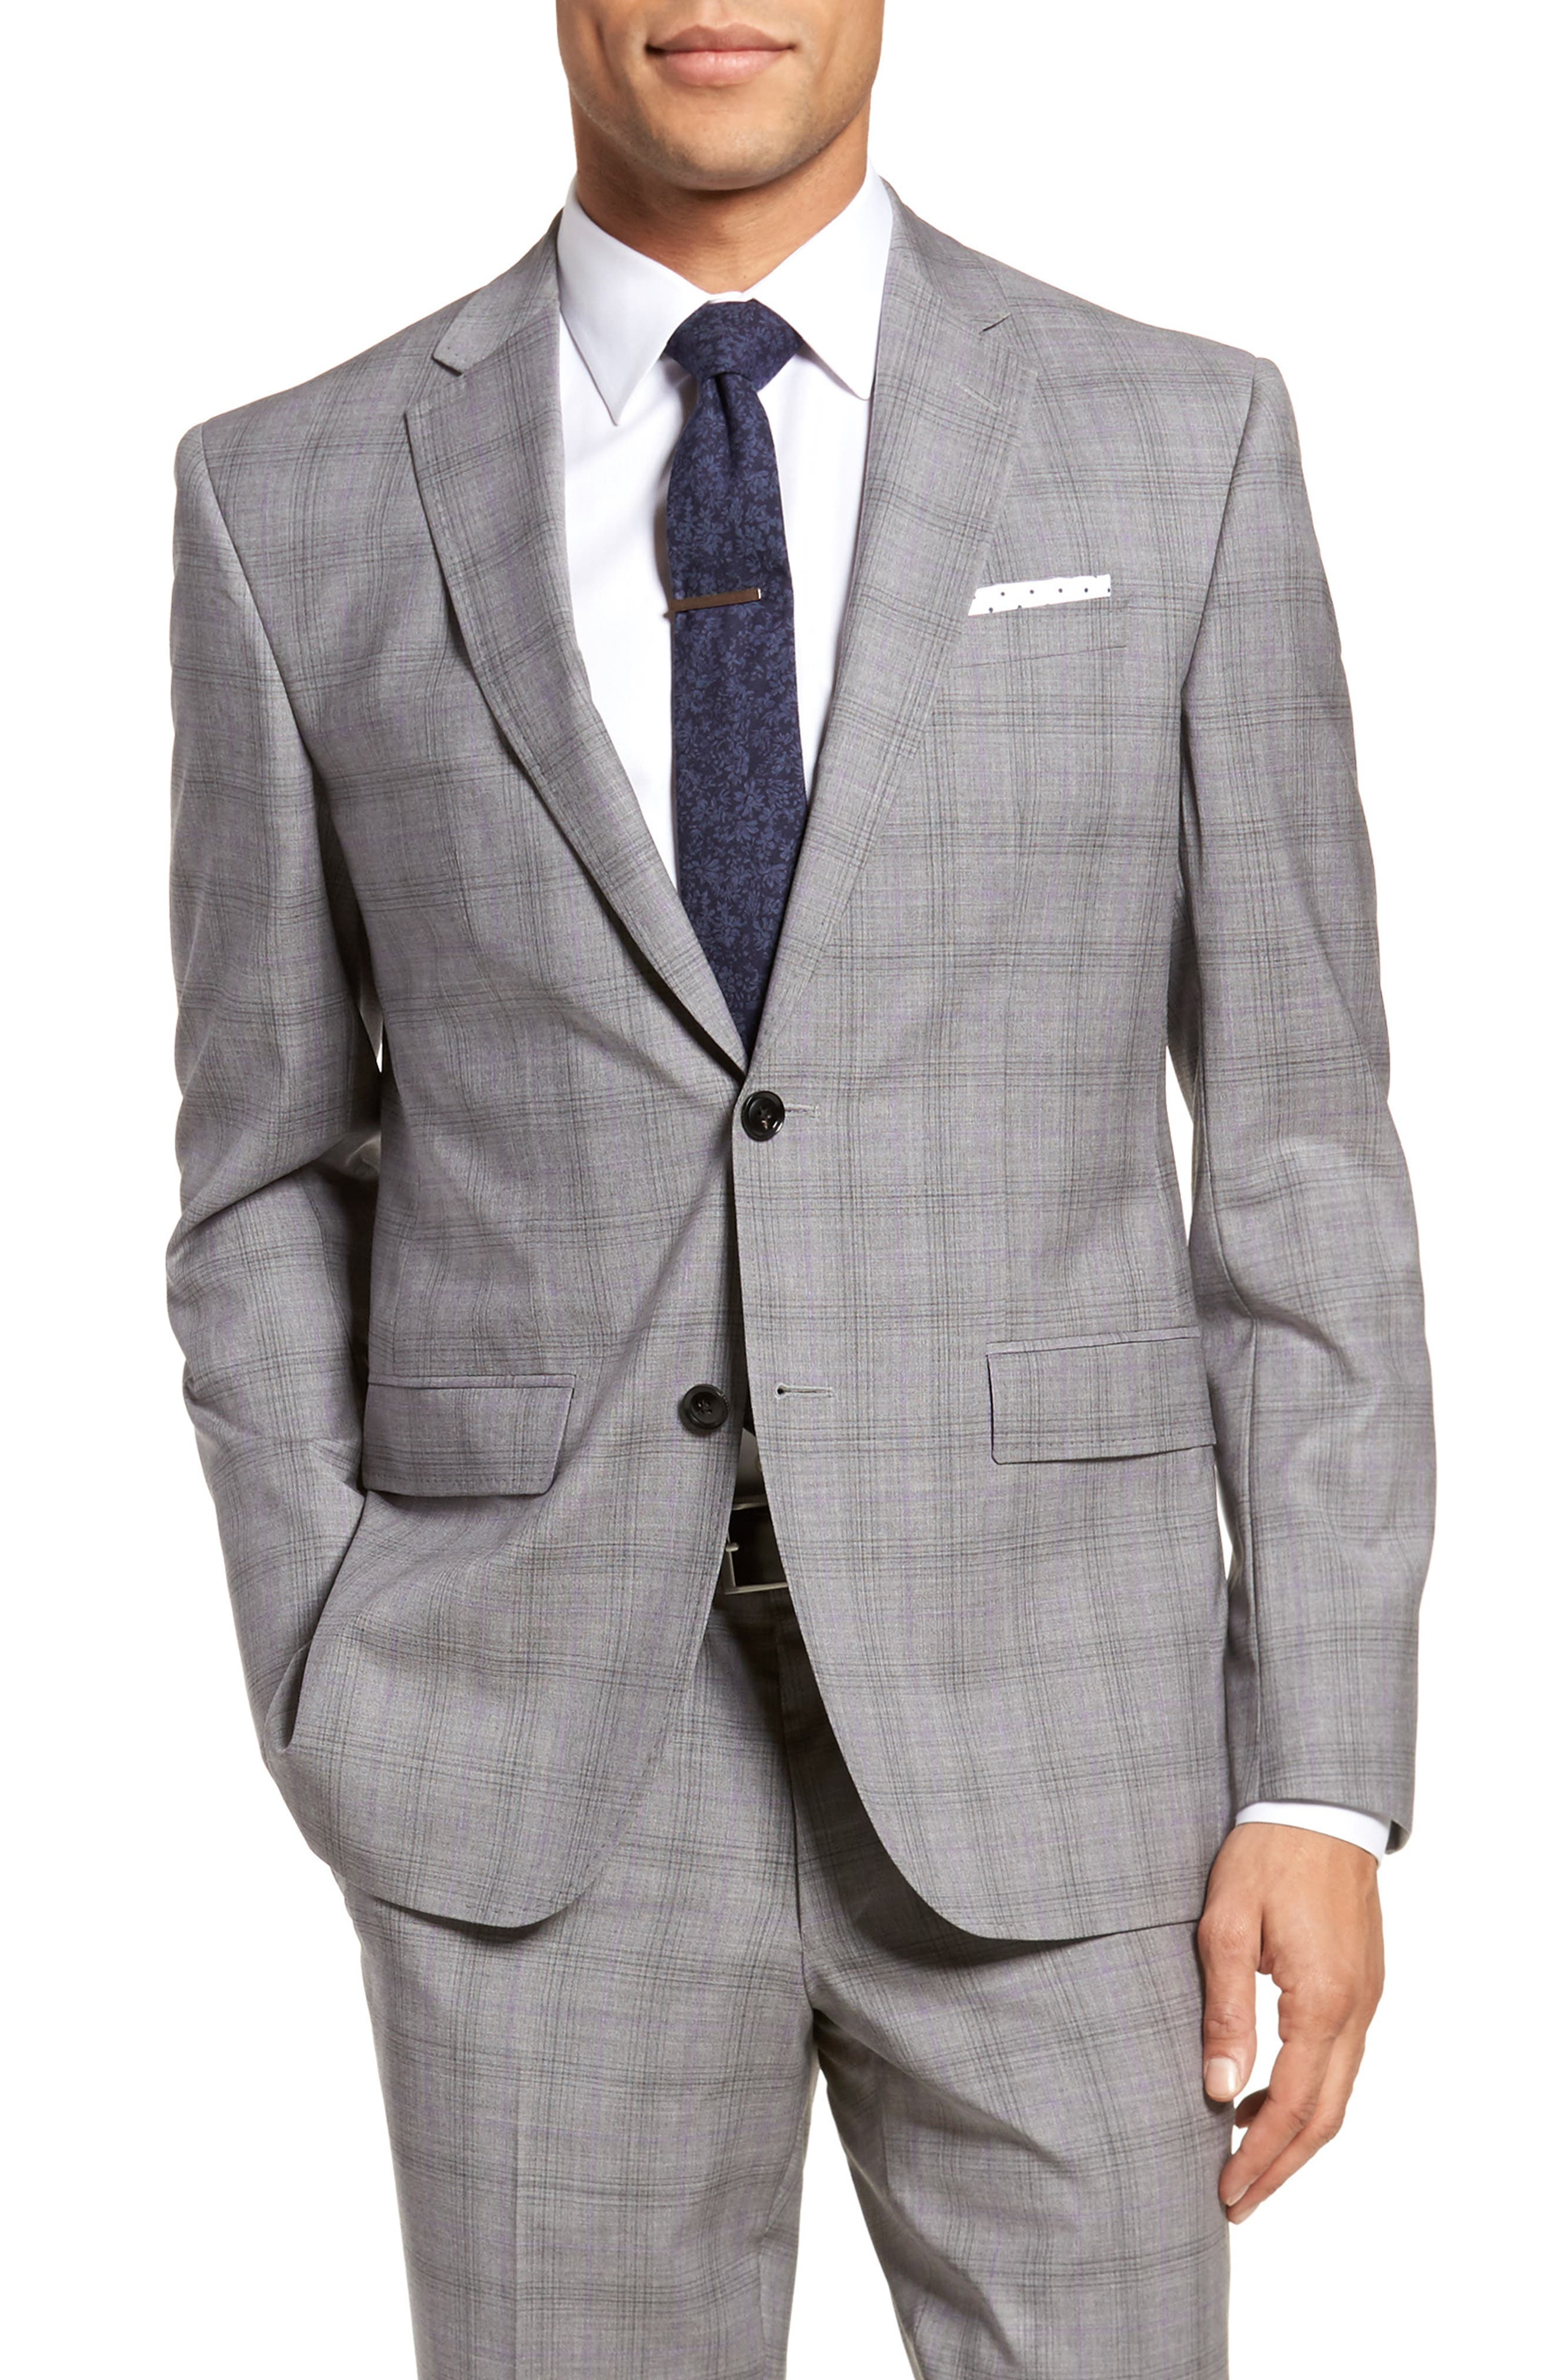 Jay Trim Fit Plaid Wool Suit,                             Alternate thumbnail 6, color,                             Light Grey